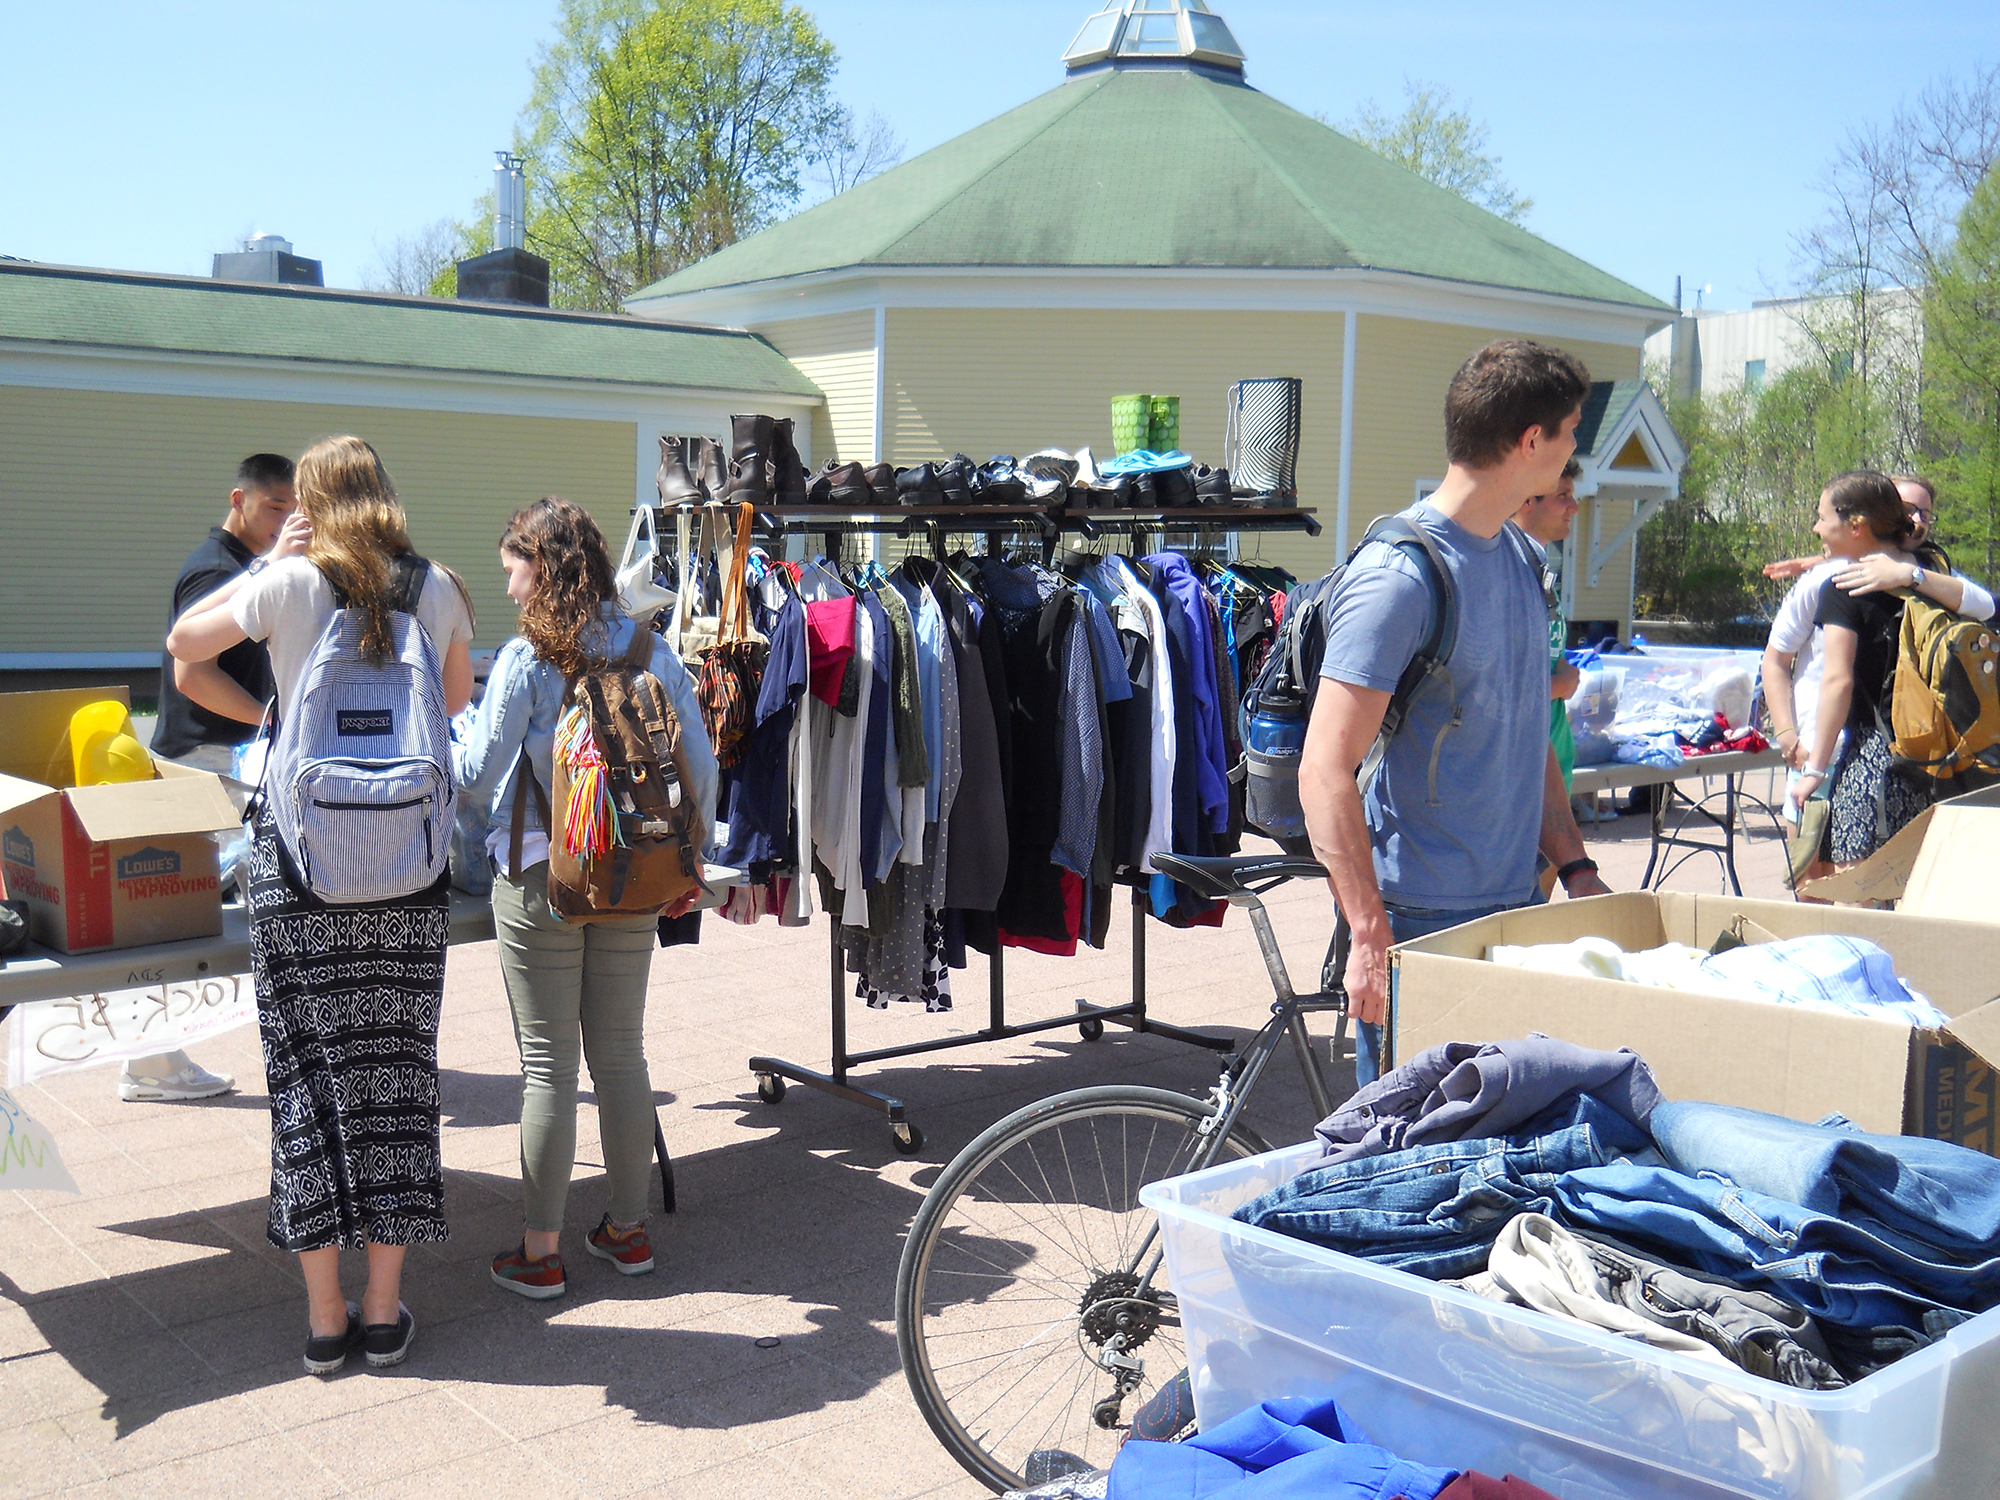 In four hours the Thrift Shop took in more than $300 for Nepal earthquake relief.